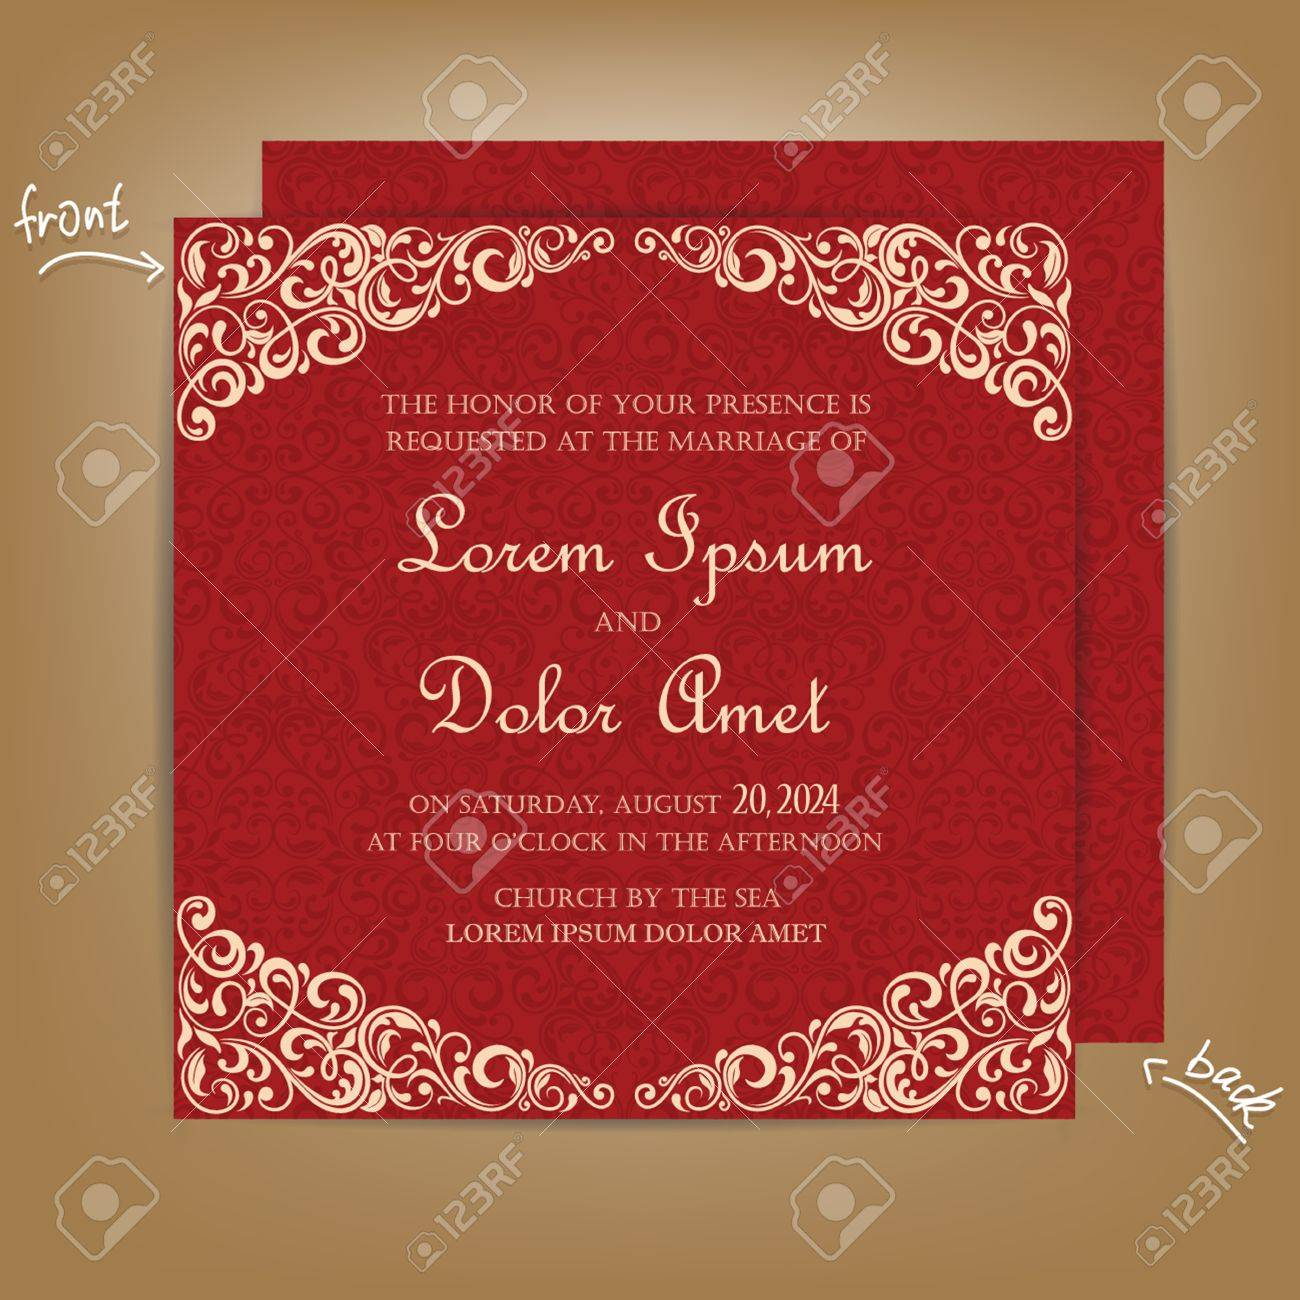 Red vintage wedding invitation card royalty free cliparts vetores imagens red vintage wedding invitation card stopboris Images